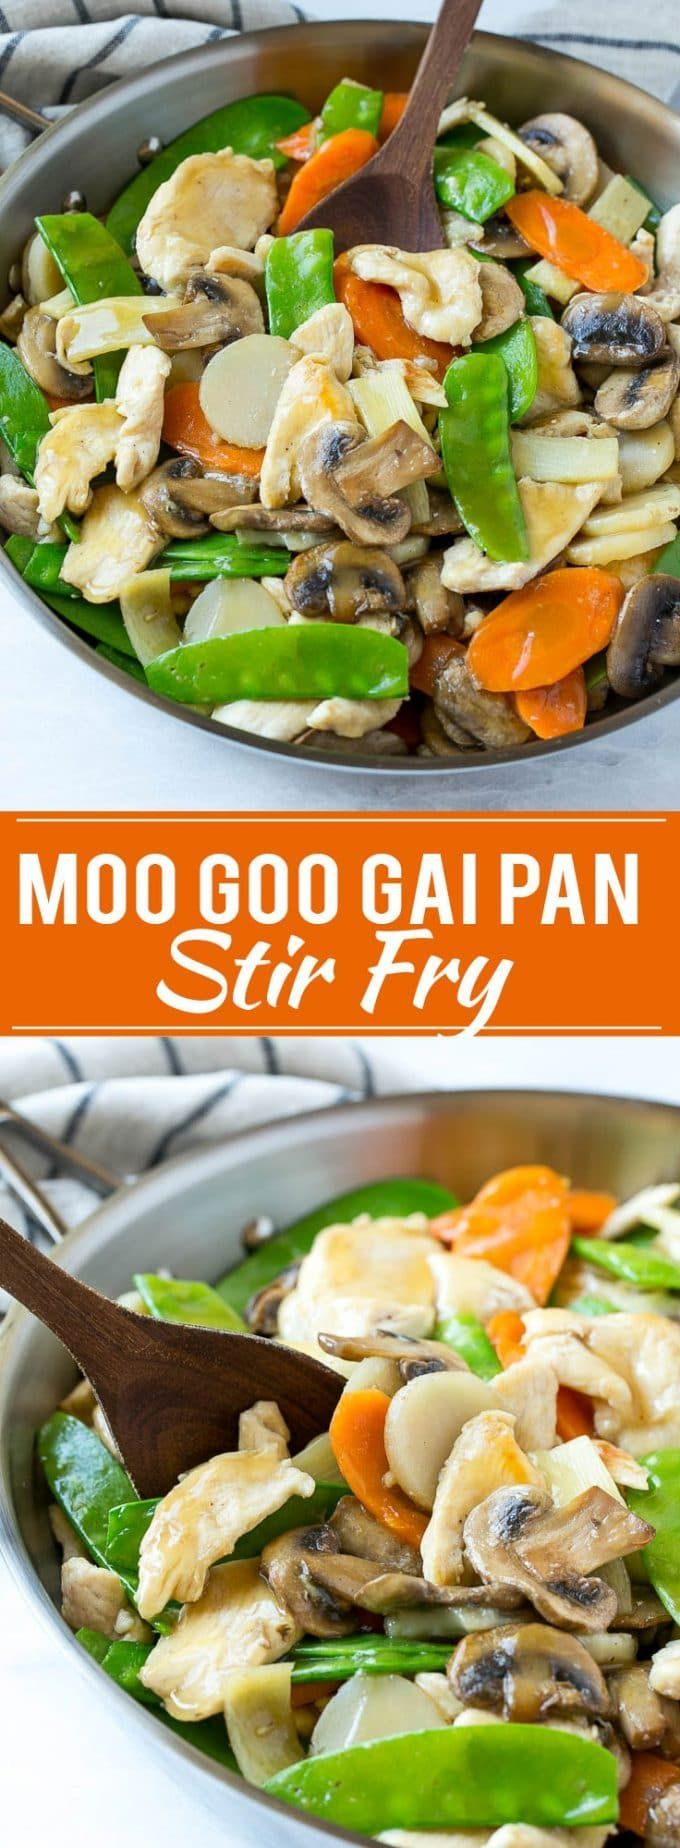 Moo Goo Gai Pan Recipe | Chicken Stir Fry | Chicken and Mushroom Stir Fry | Take Out | Chinese Food | Easy Chicken Recipe